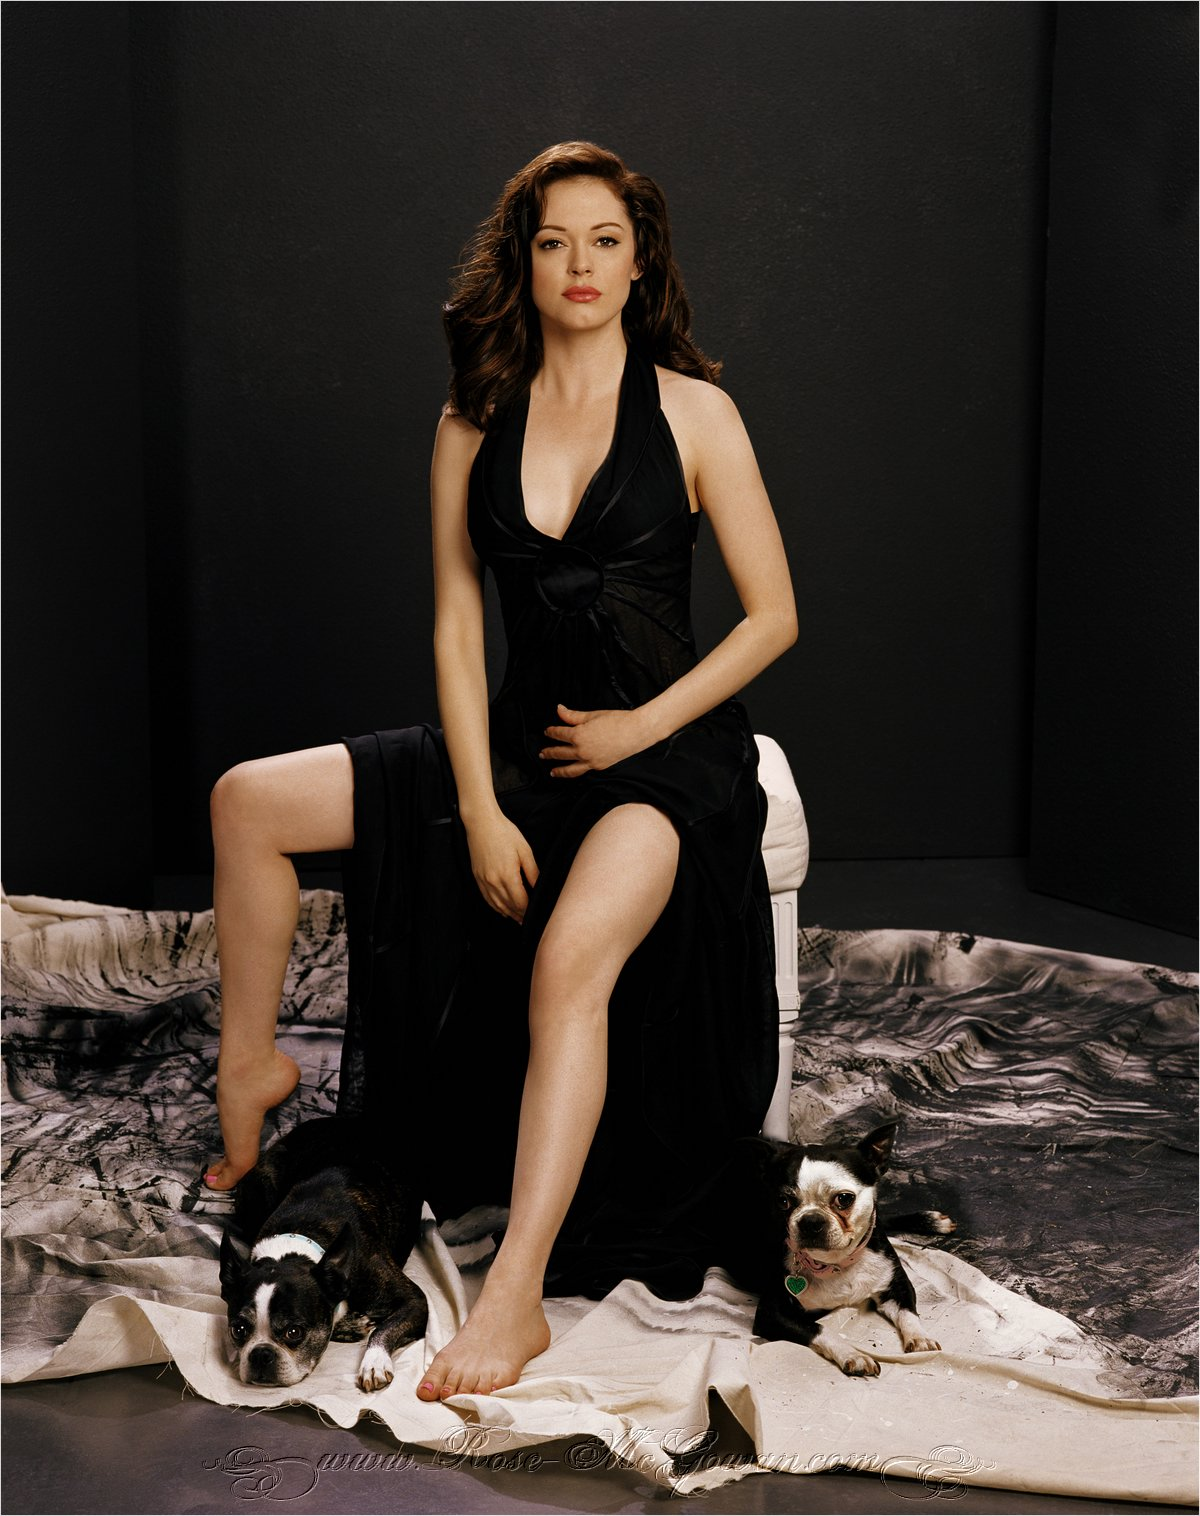 Her pictures 34204_rose_mcgowan_unknown_iii_2_122_380lo